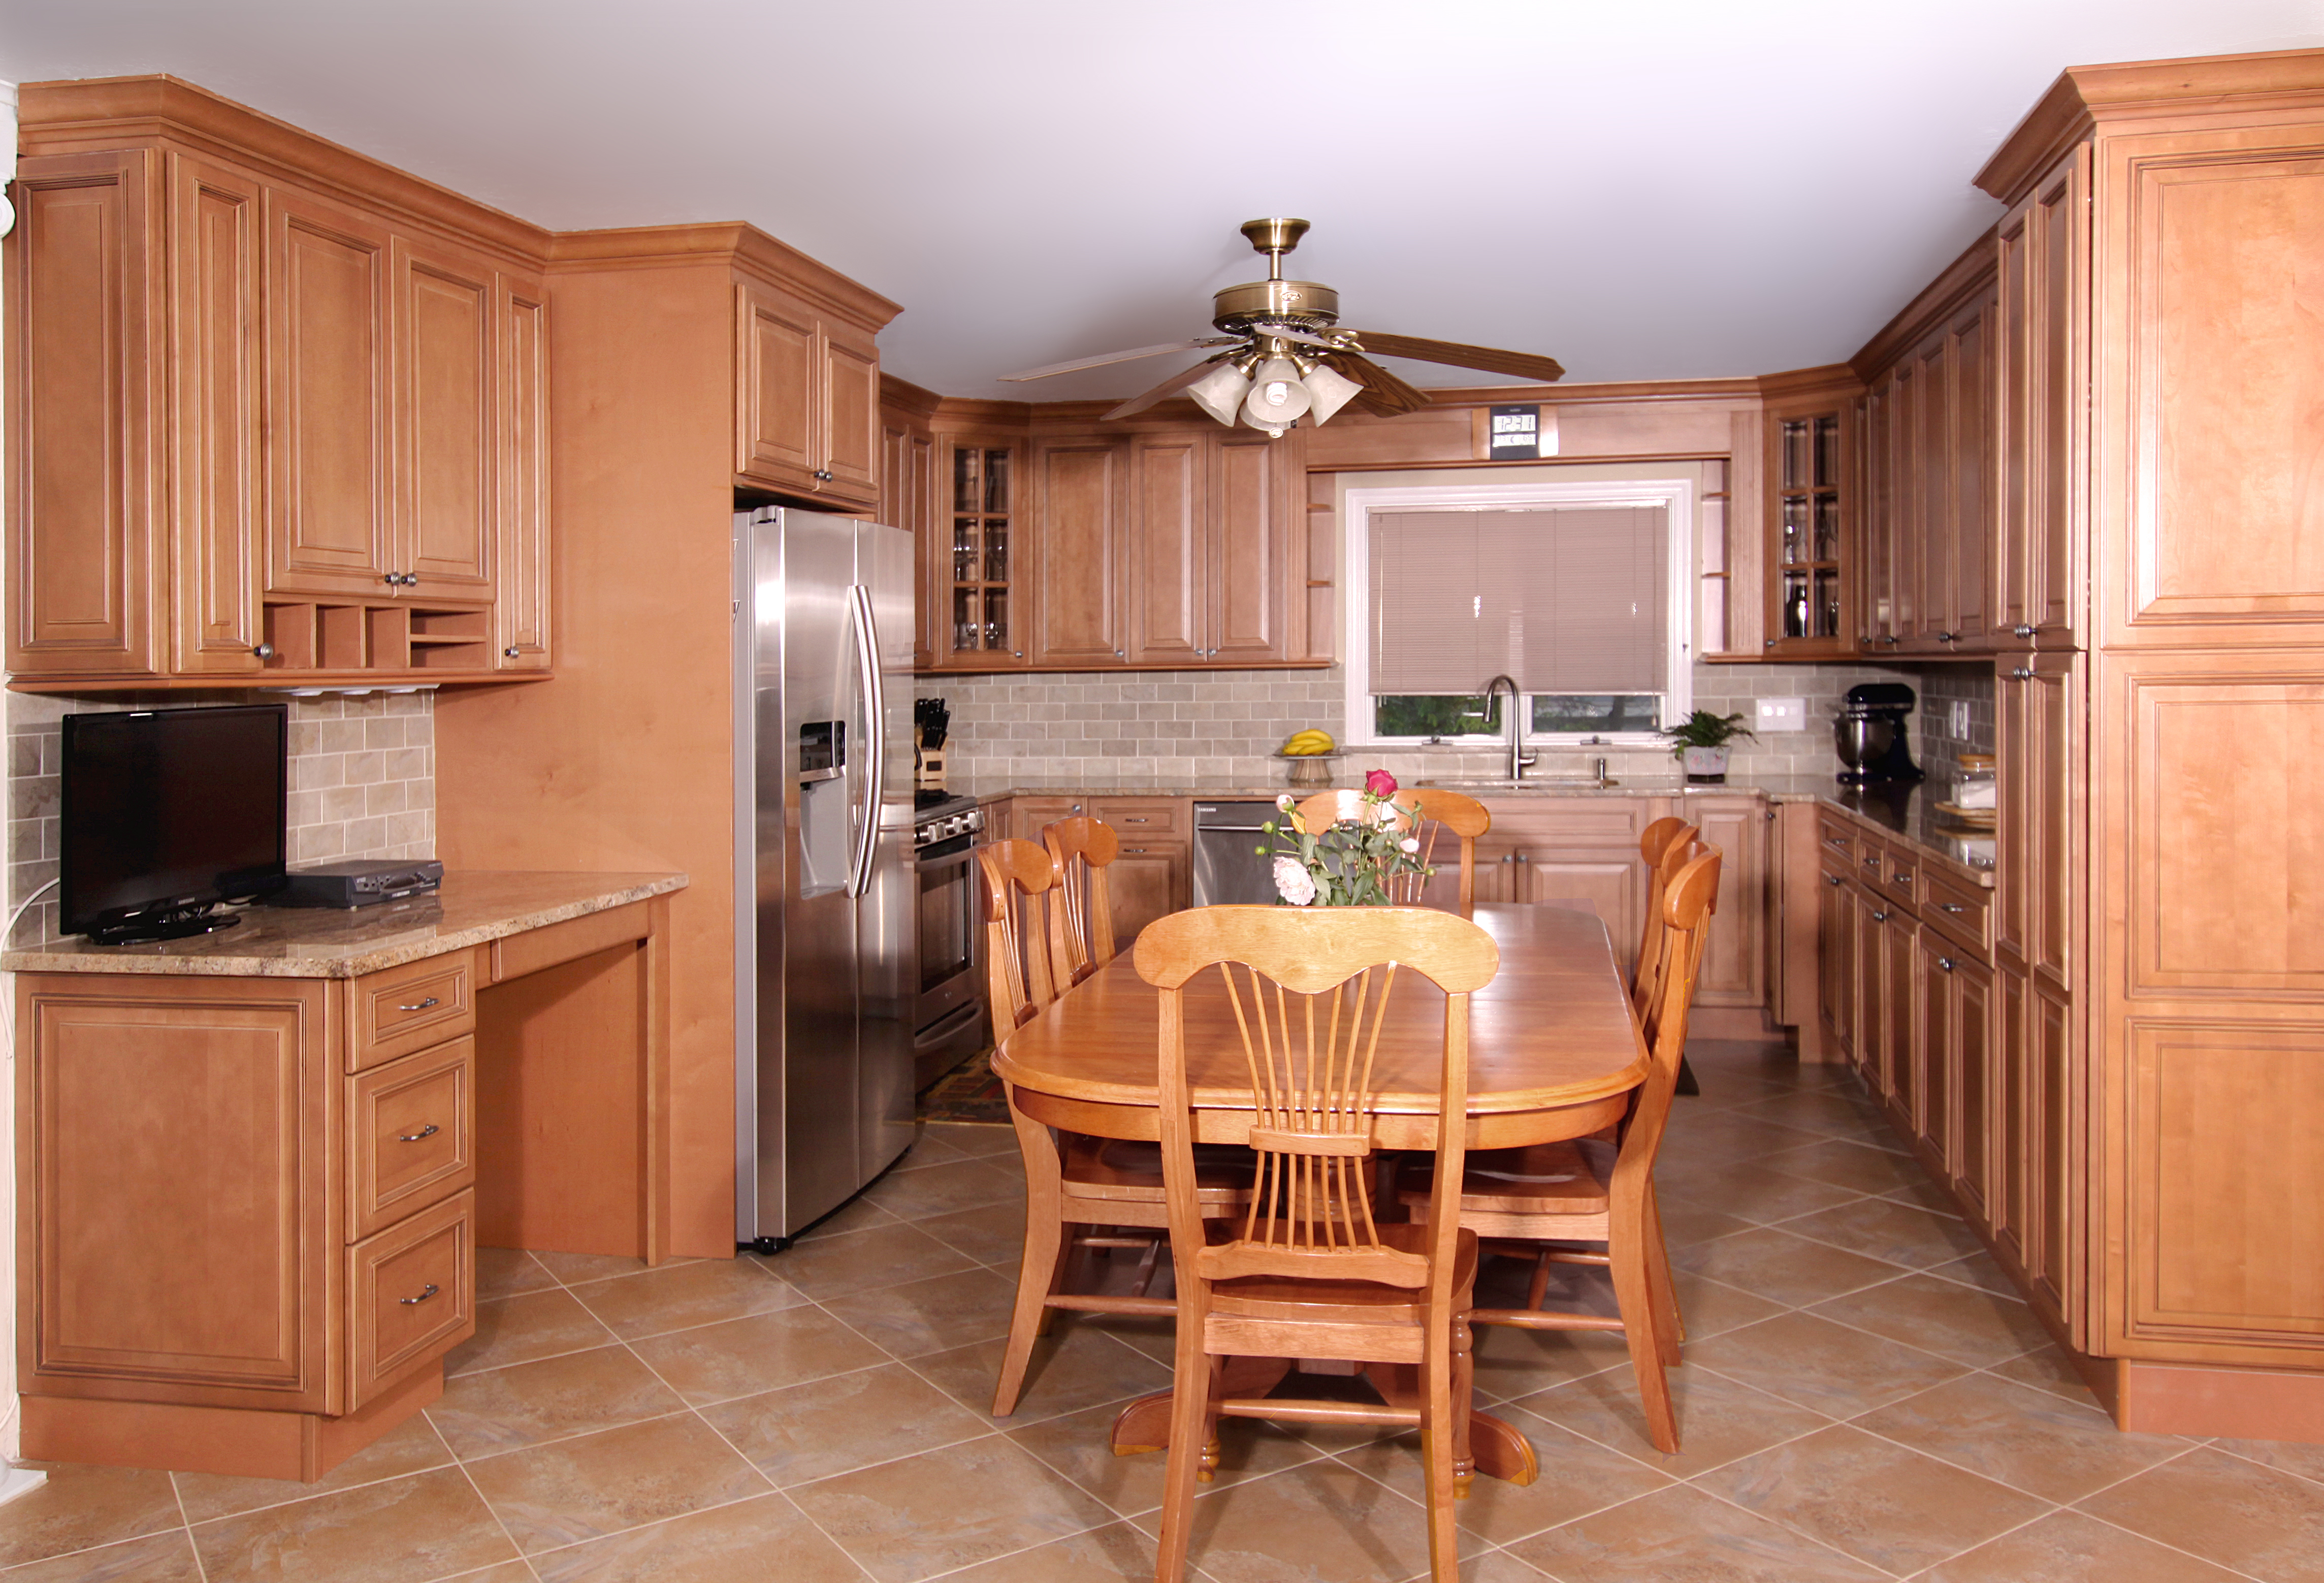 Kitchen cabinets danbury ct - Image 12 Danbury Showplace Cabinets Traditional Kitchen